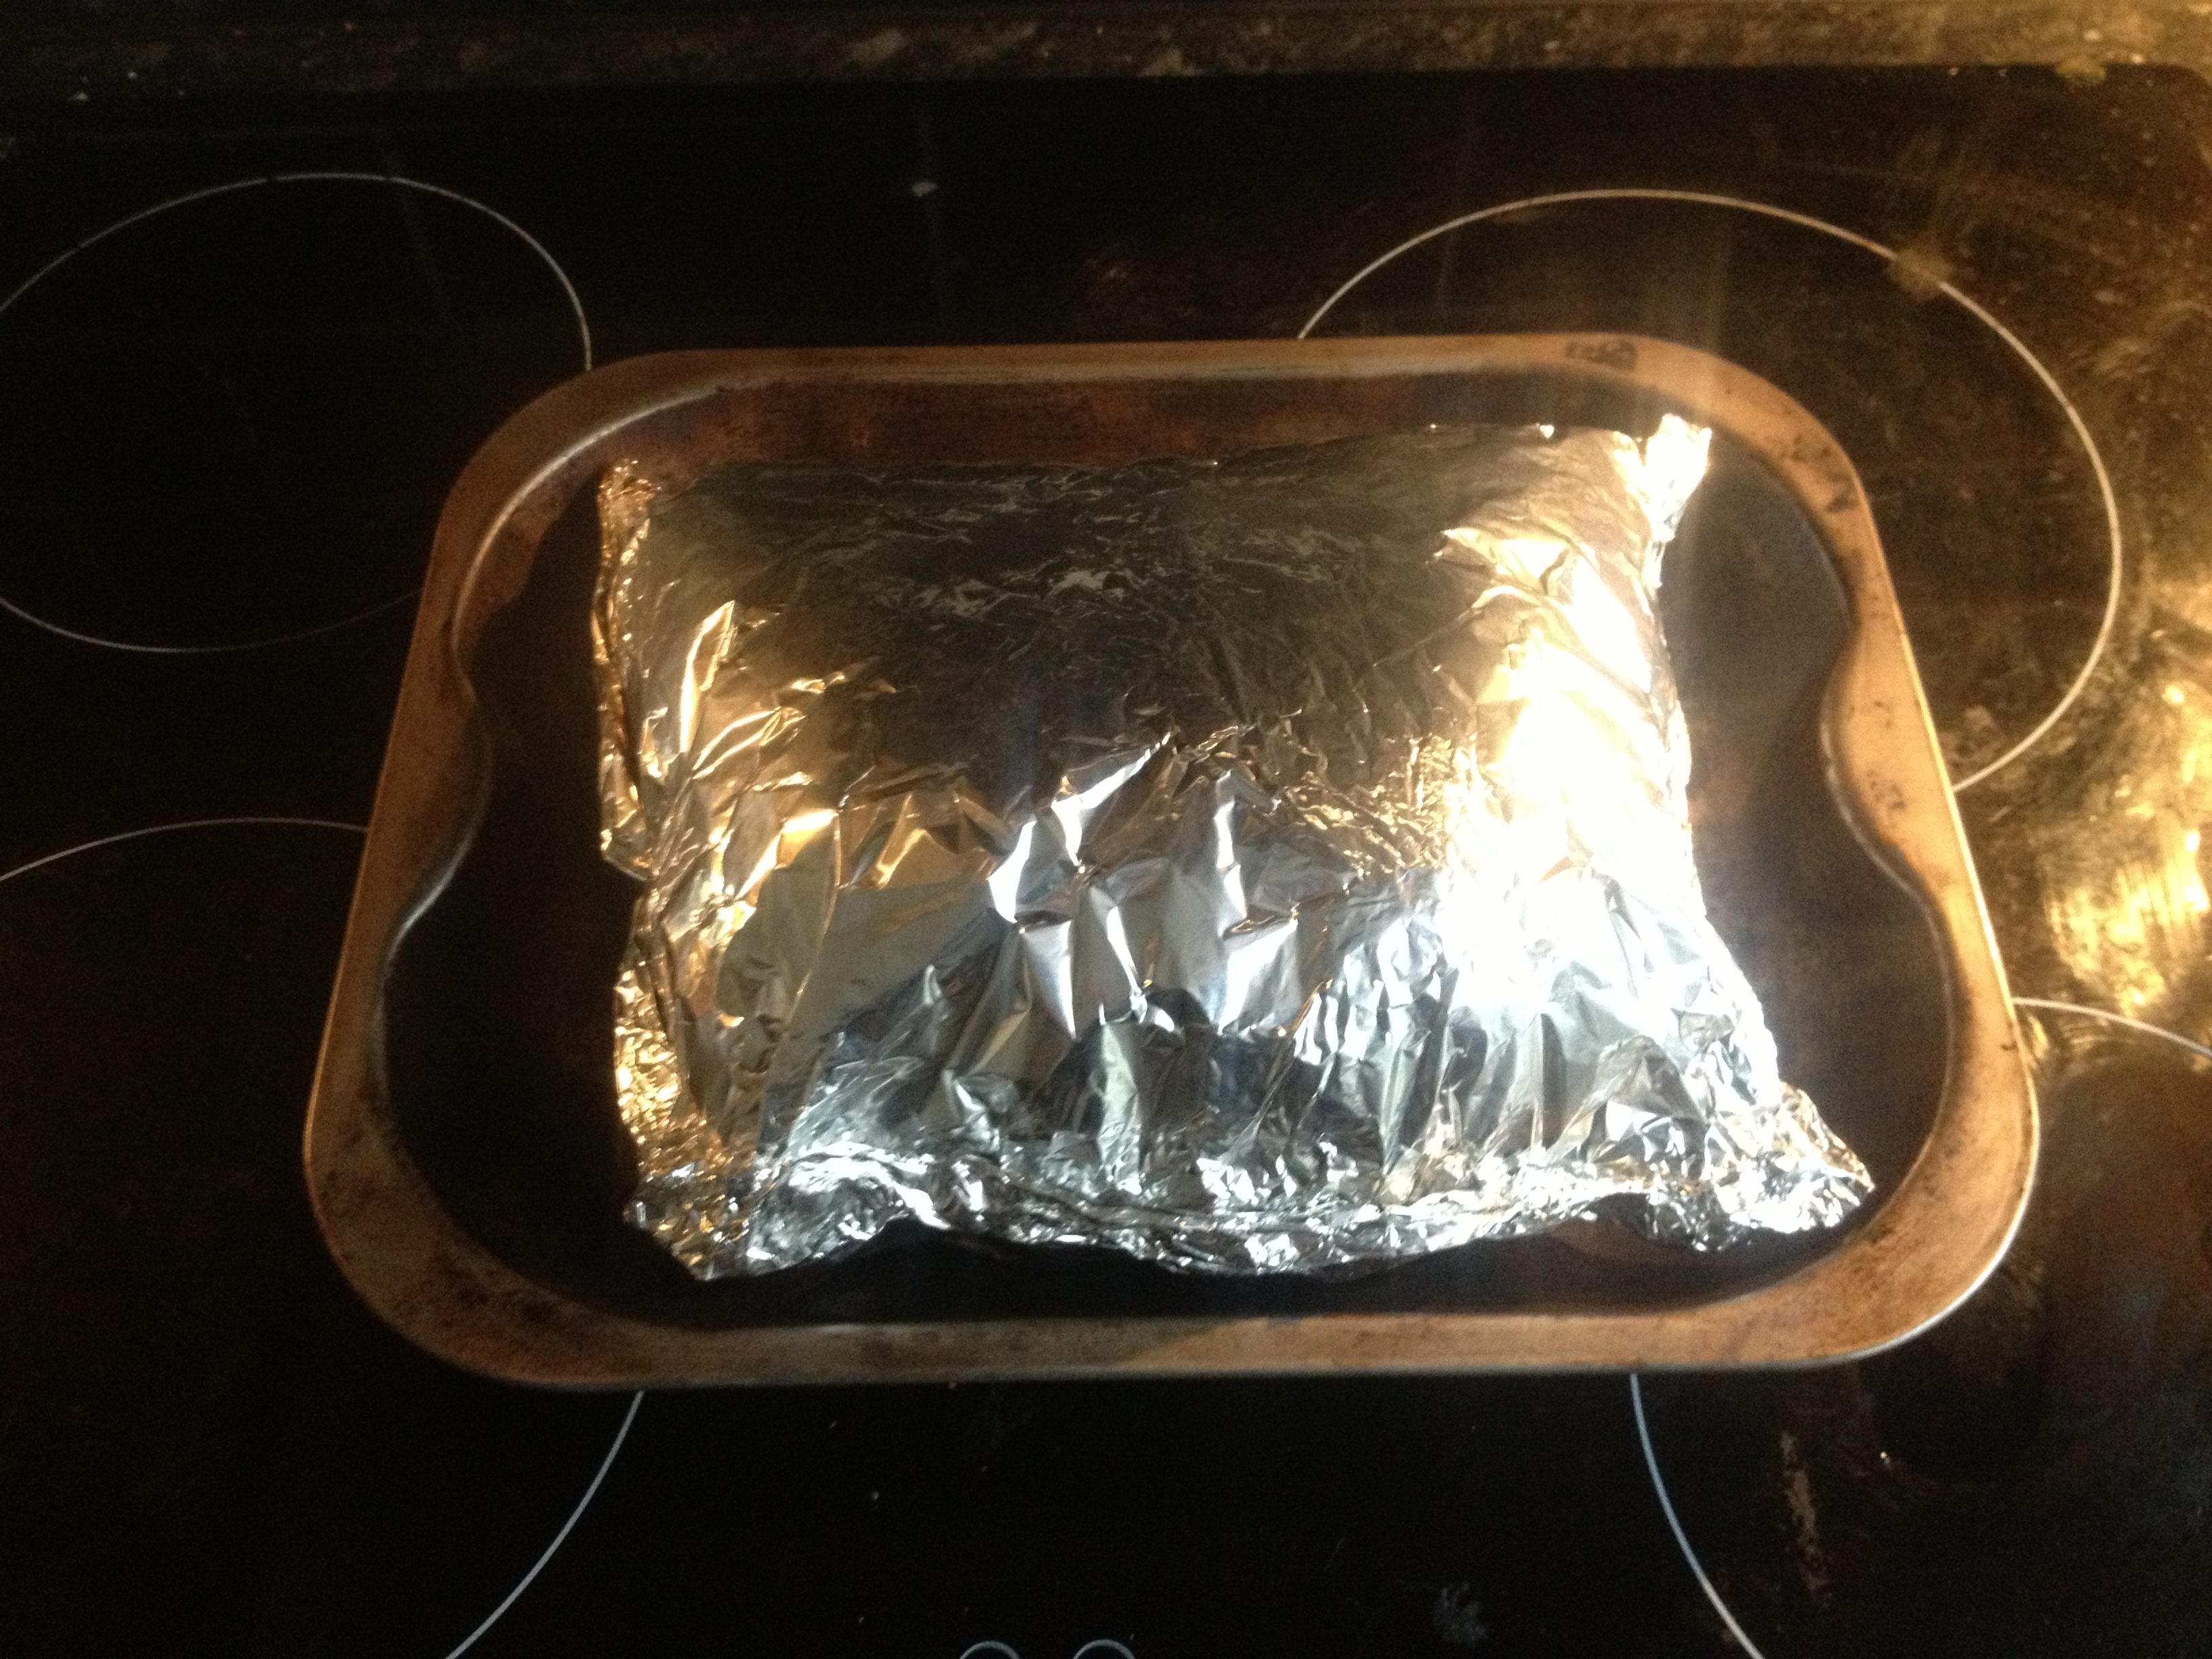 Chicken recipes, hoyles fitness, the handy plan, chicken in a parcel recipe